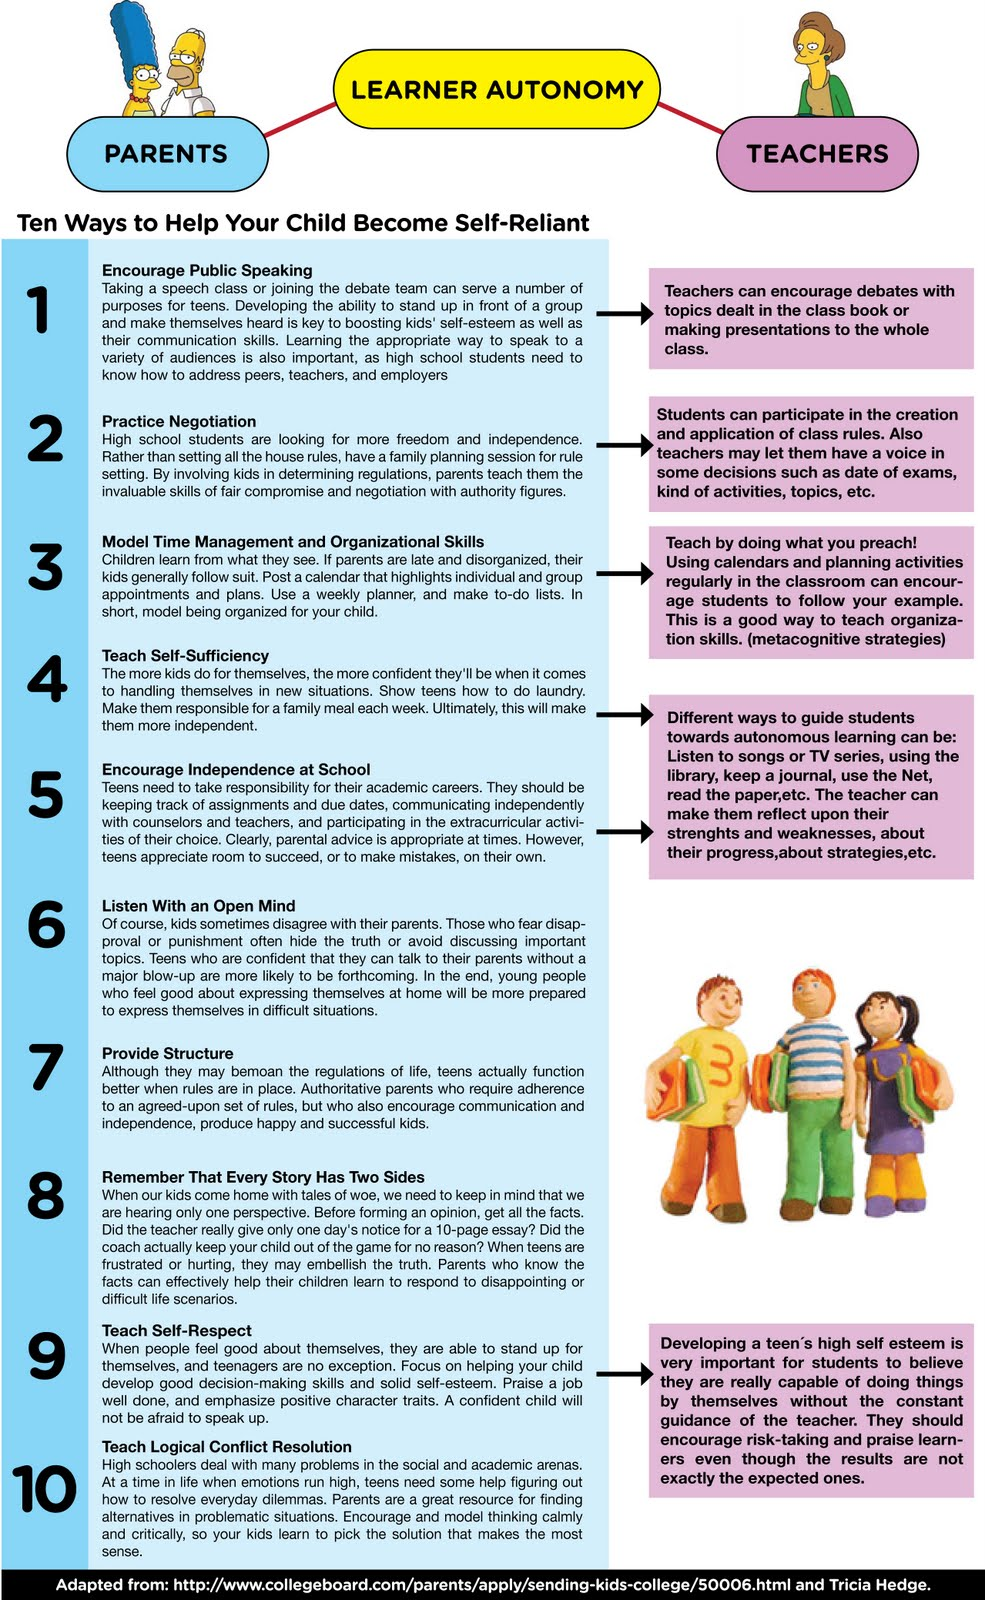 methods2 10 tips given to parents and i will develop a bit more those tips which can be applied to help teens develop their learning autonomy hope you like it